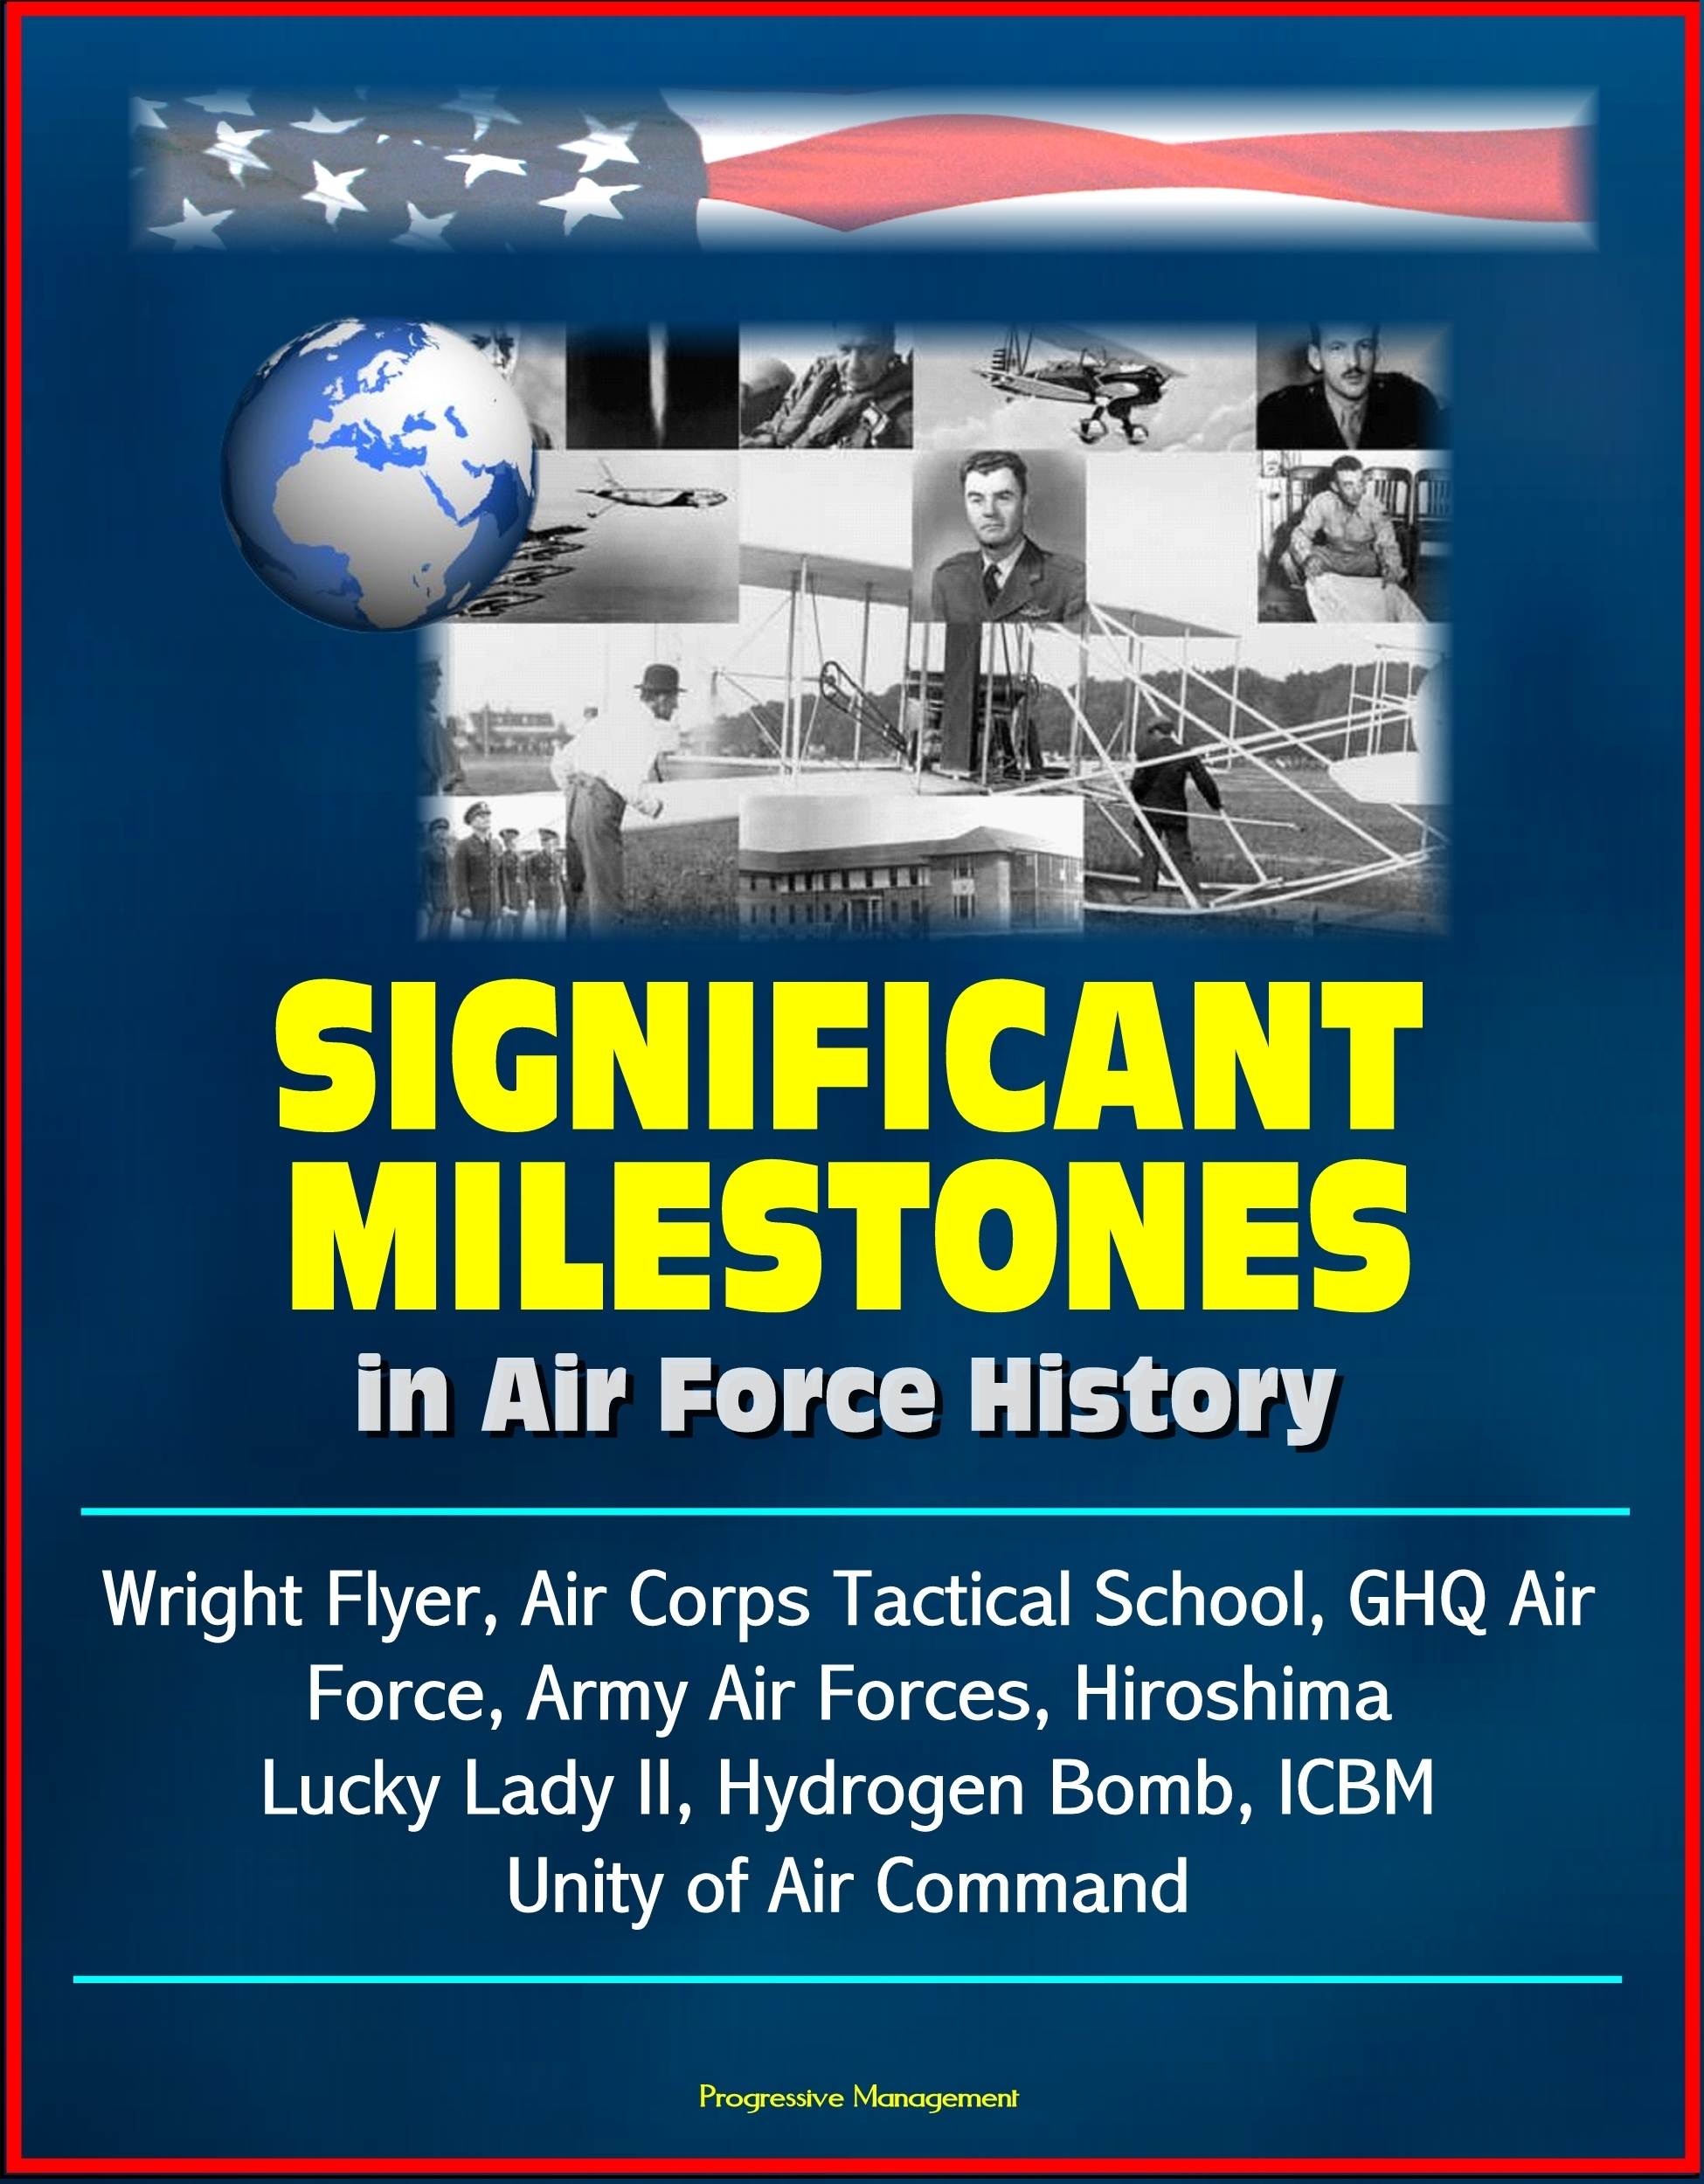 Significant Milestones in Air Force History: Wright Flyer, Air Corps Tactical School, GHQ Air Force, Army Air Forces, Hiroshima, Lucky Lady II, Hydrogen Bomb, ICBM, Unity of Air Command  by  Progressive Management